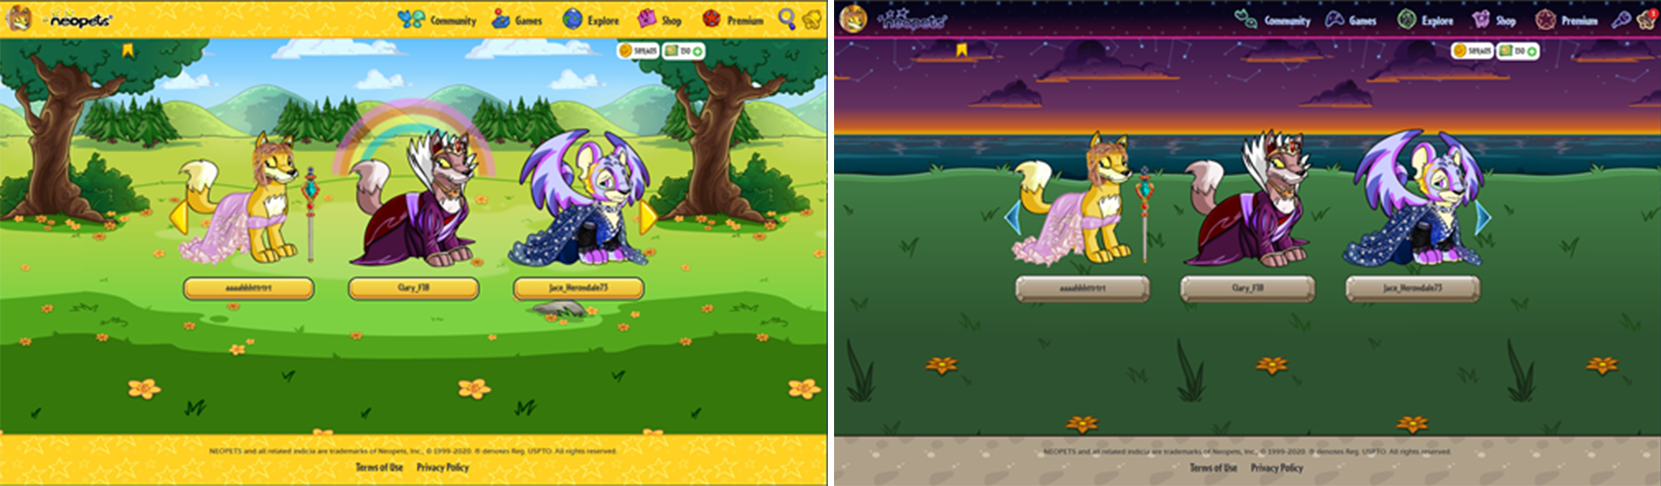 Neopets themes on mobile